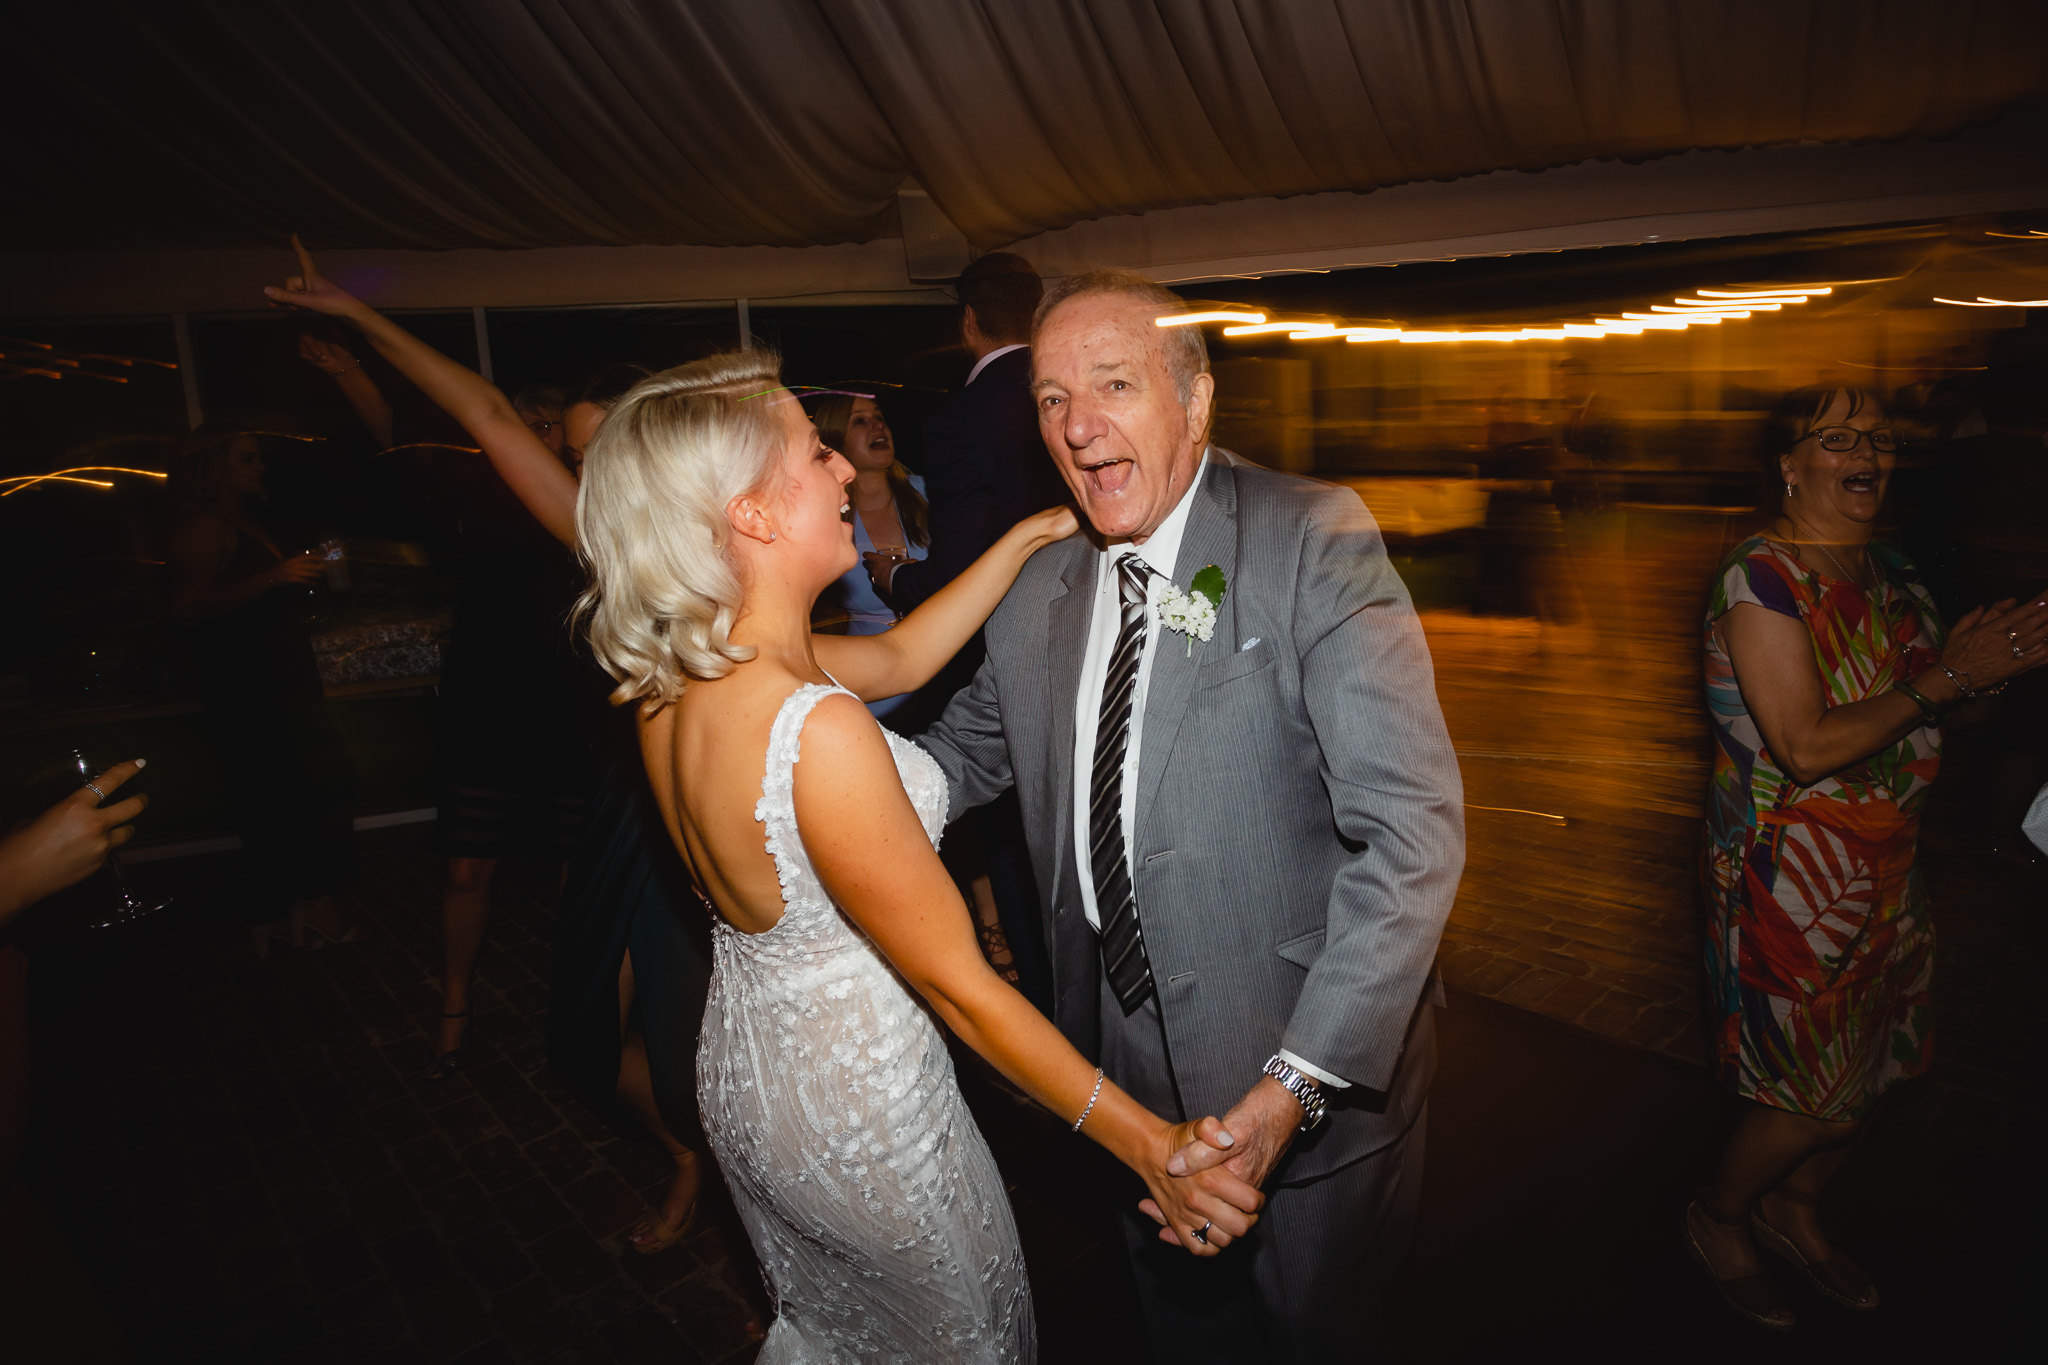 bride dancing with granddad at wedding reception